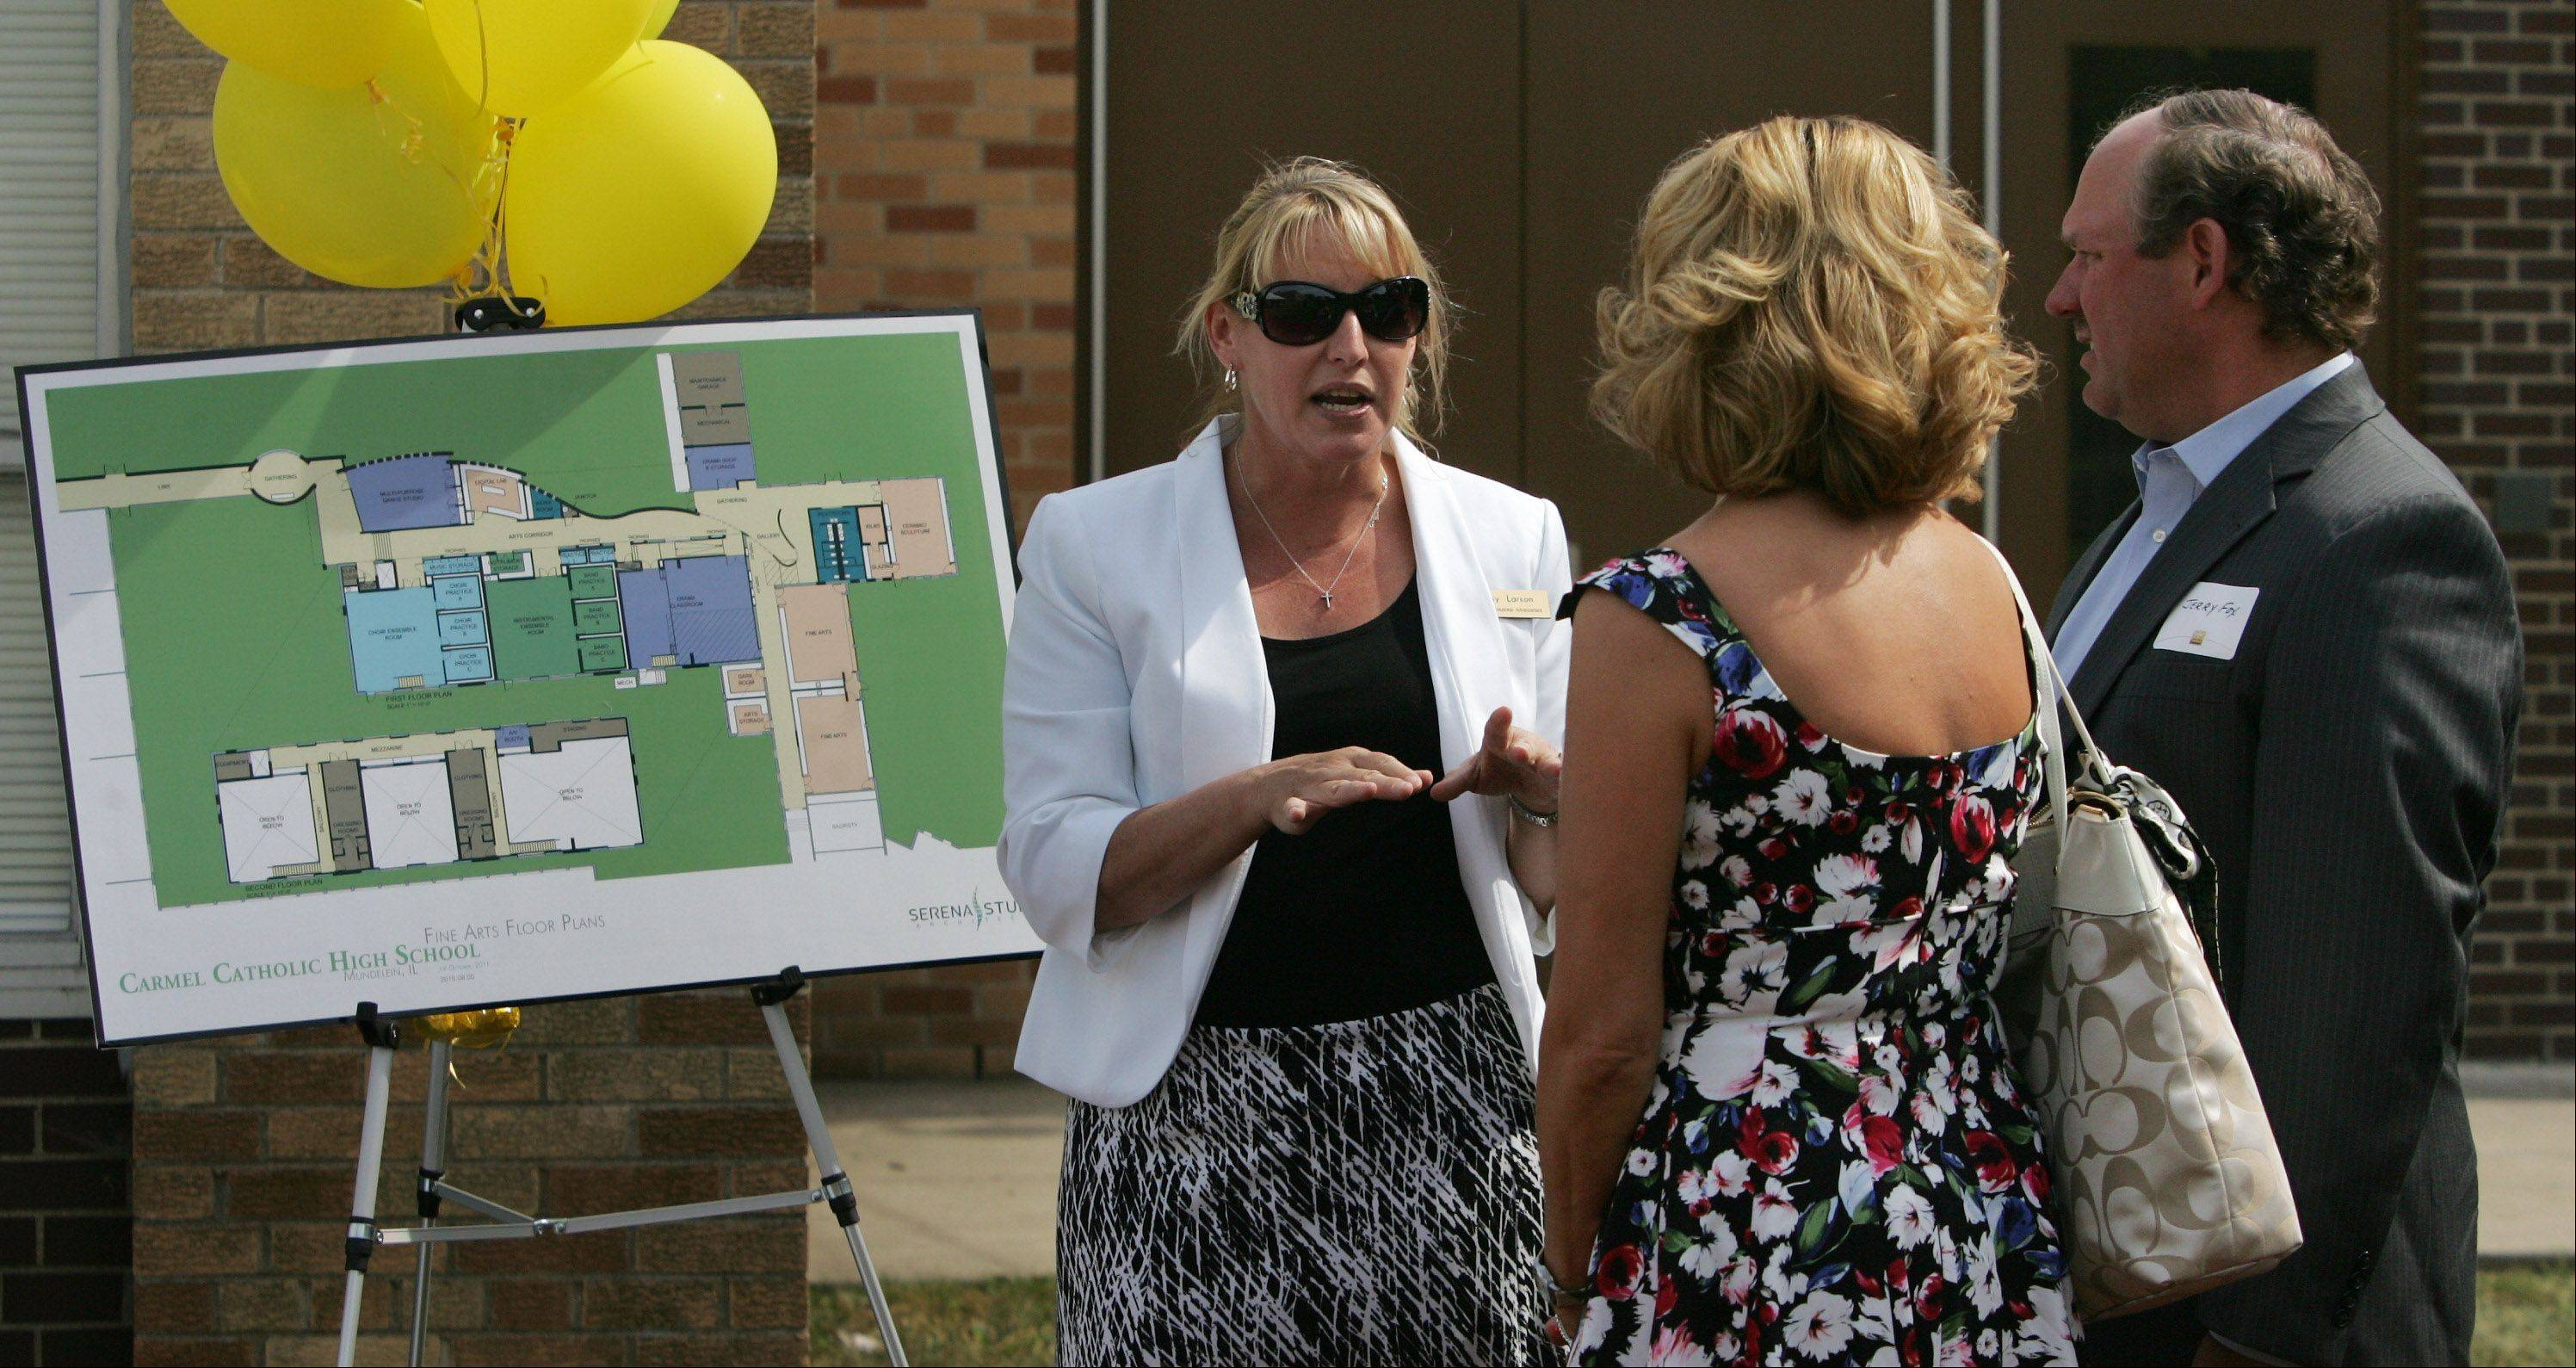 Volunteer Betsy Larson, of Gurnee, talks to Caryn and Jerry Fox, of Hawthorn Woods, about the new Fine Arts facility before the groundbreaking ceremony Thursday at Carmel Catholic High School. The arts center will include a dance studio, a black box theater, art gallery space and more.